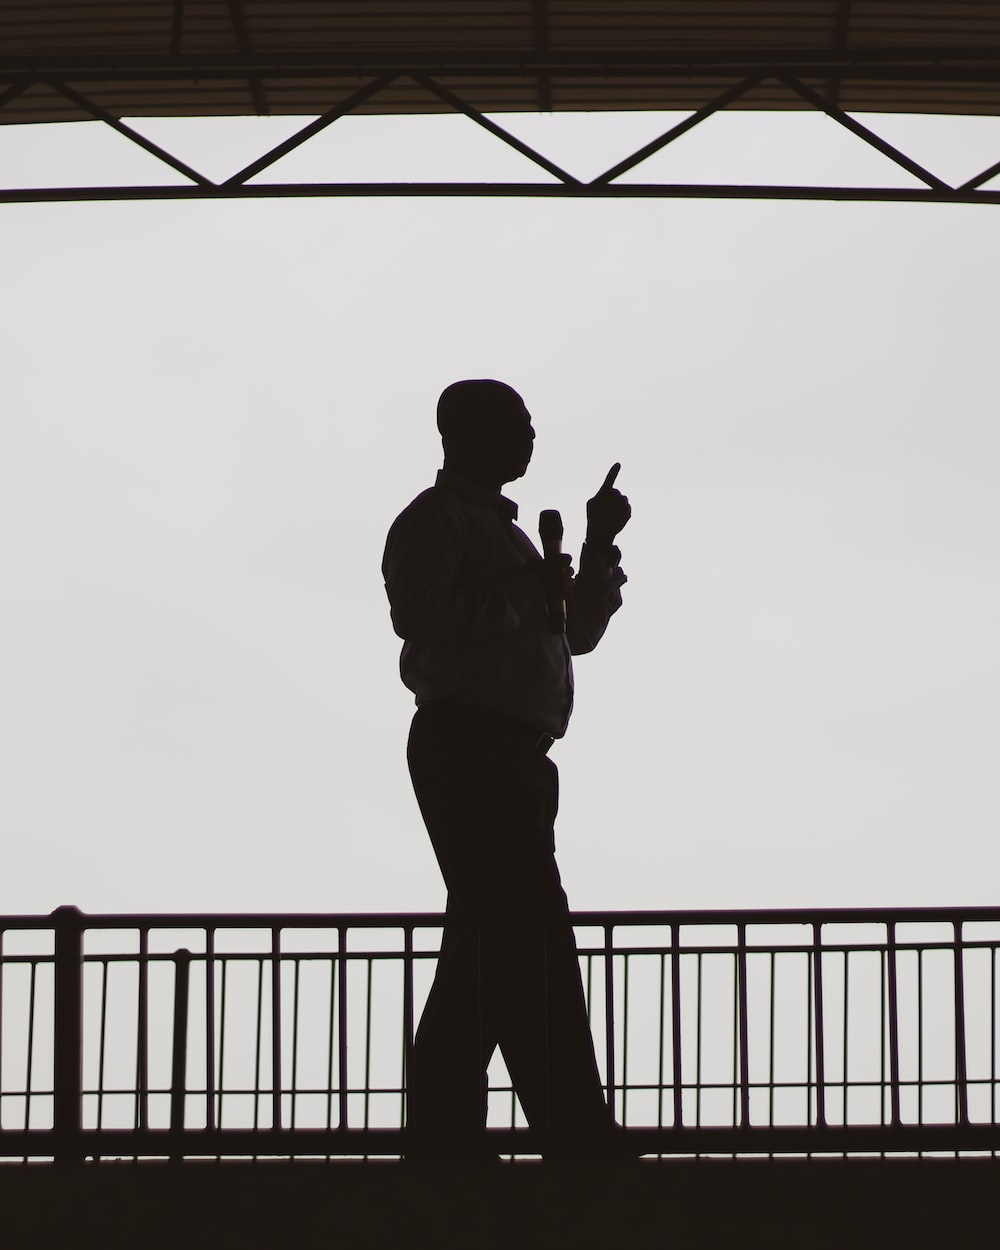 silhouette of man standing near fence during daytime